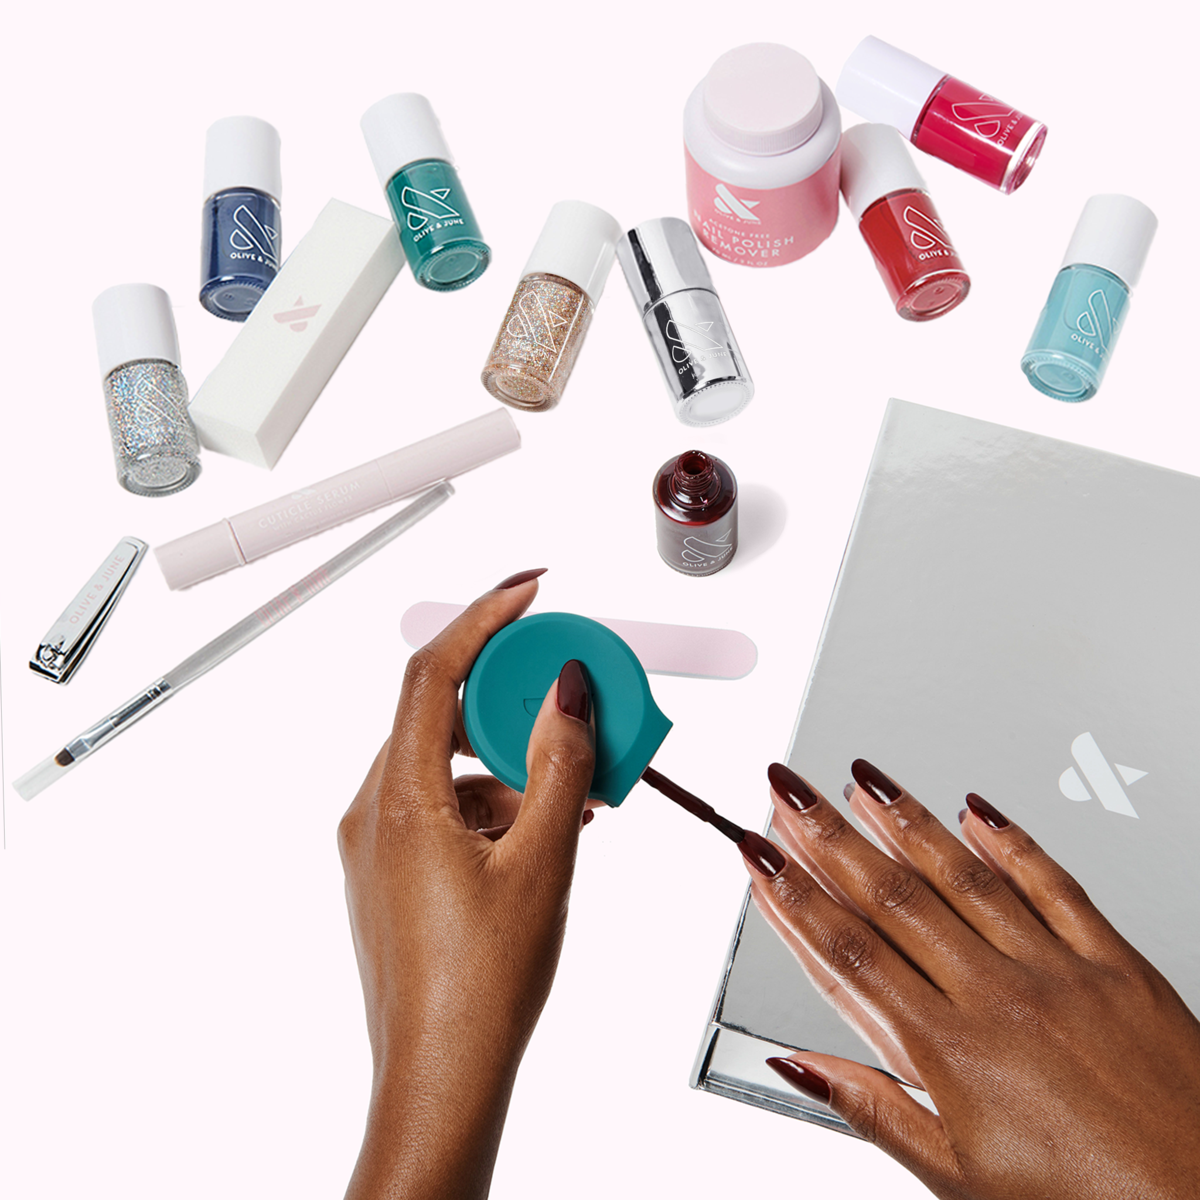 A model applies nail polish surrounded by the mani system